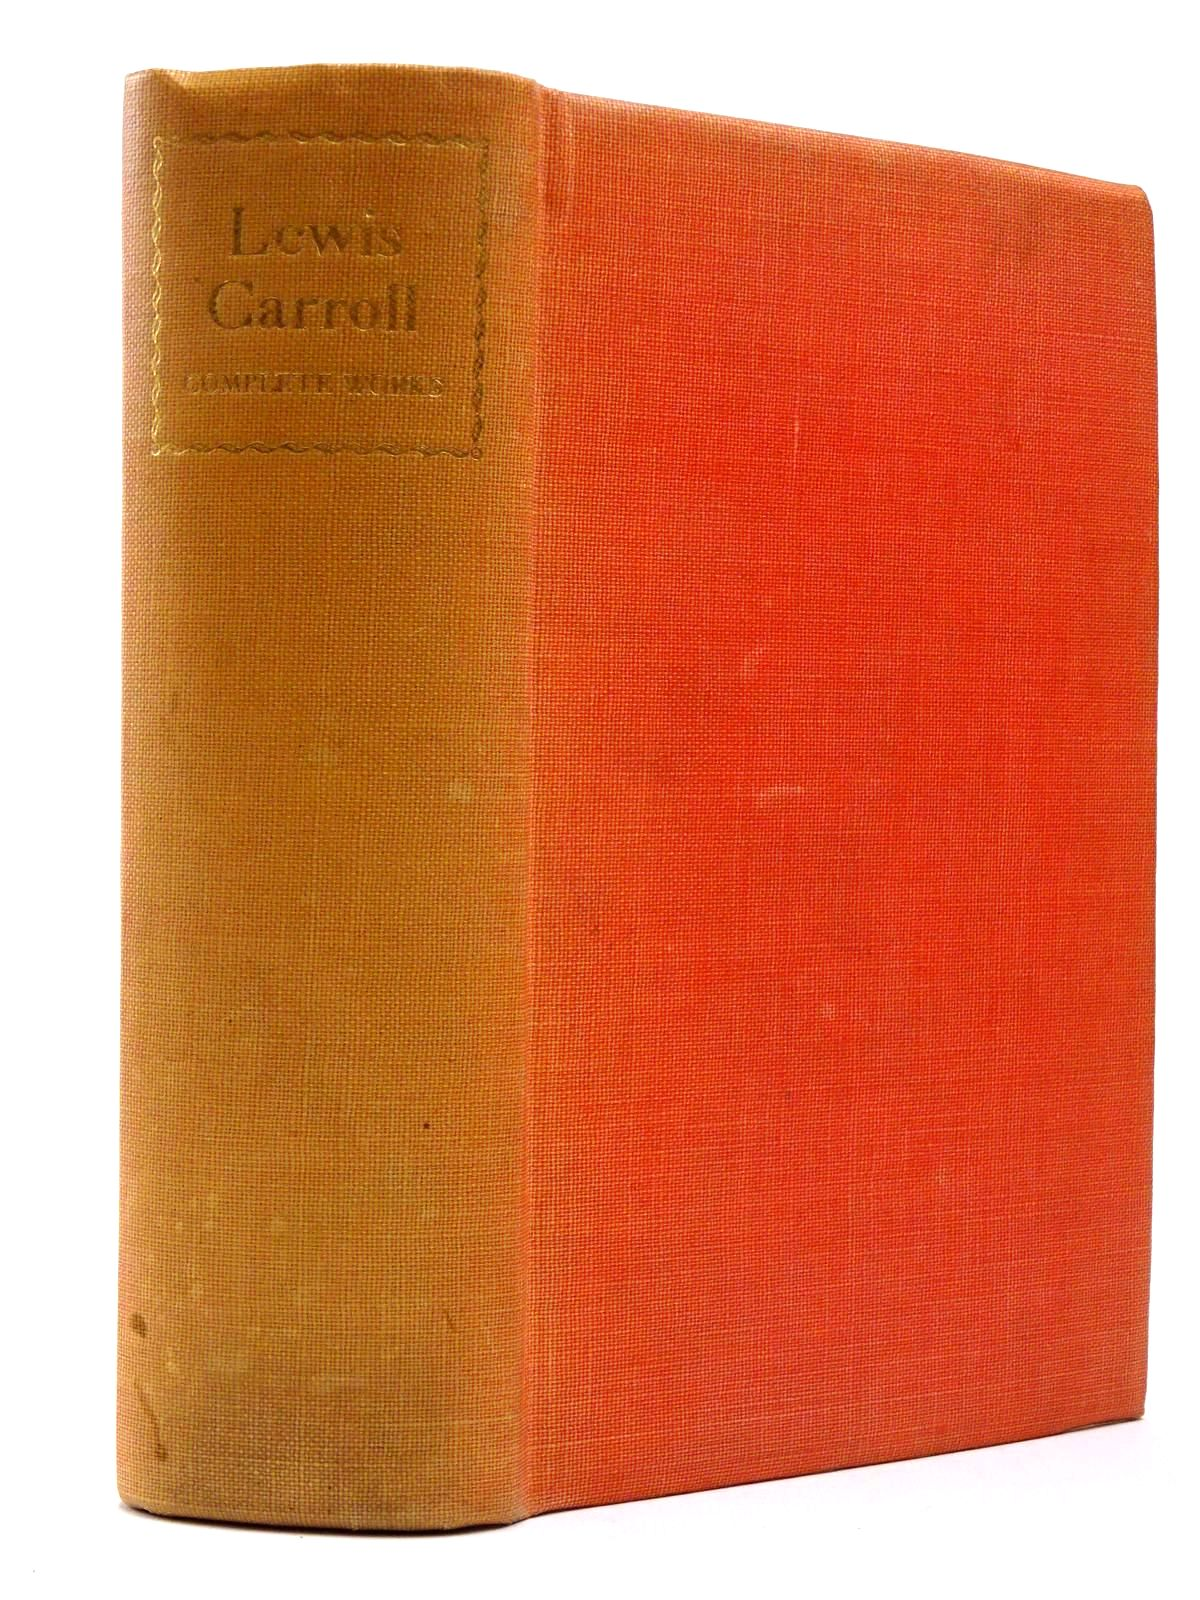 Photo of THE COMPLETE WORKS OF LEWIS CARROLL written by Carroll, Lewis illustrated by Tenniel, John published by The Nonesuch Press (STOCK CODE: 2129810)  for sale by Stella & Rose's Books